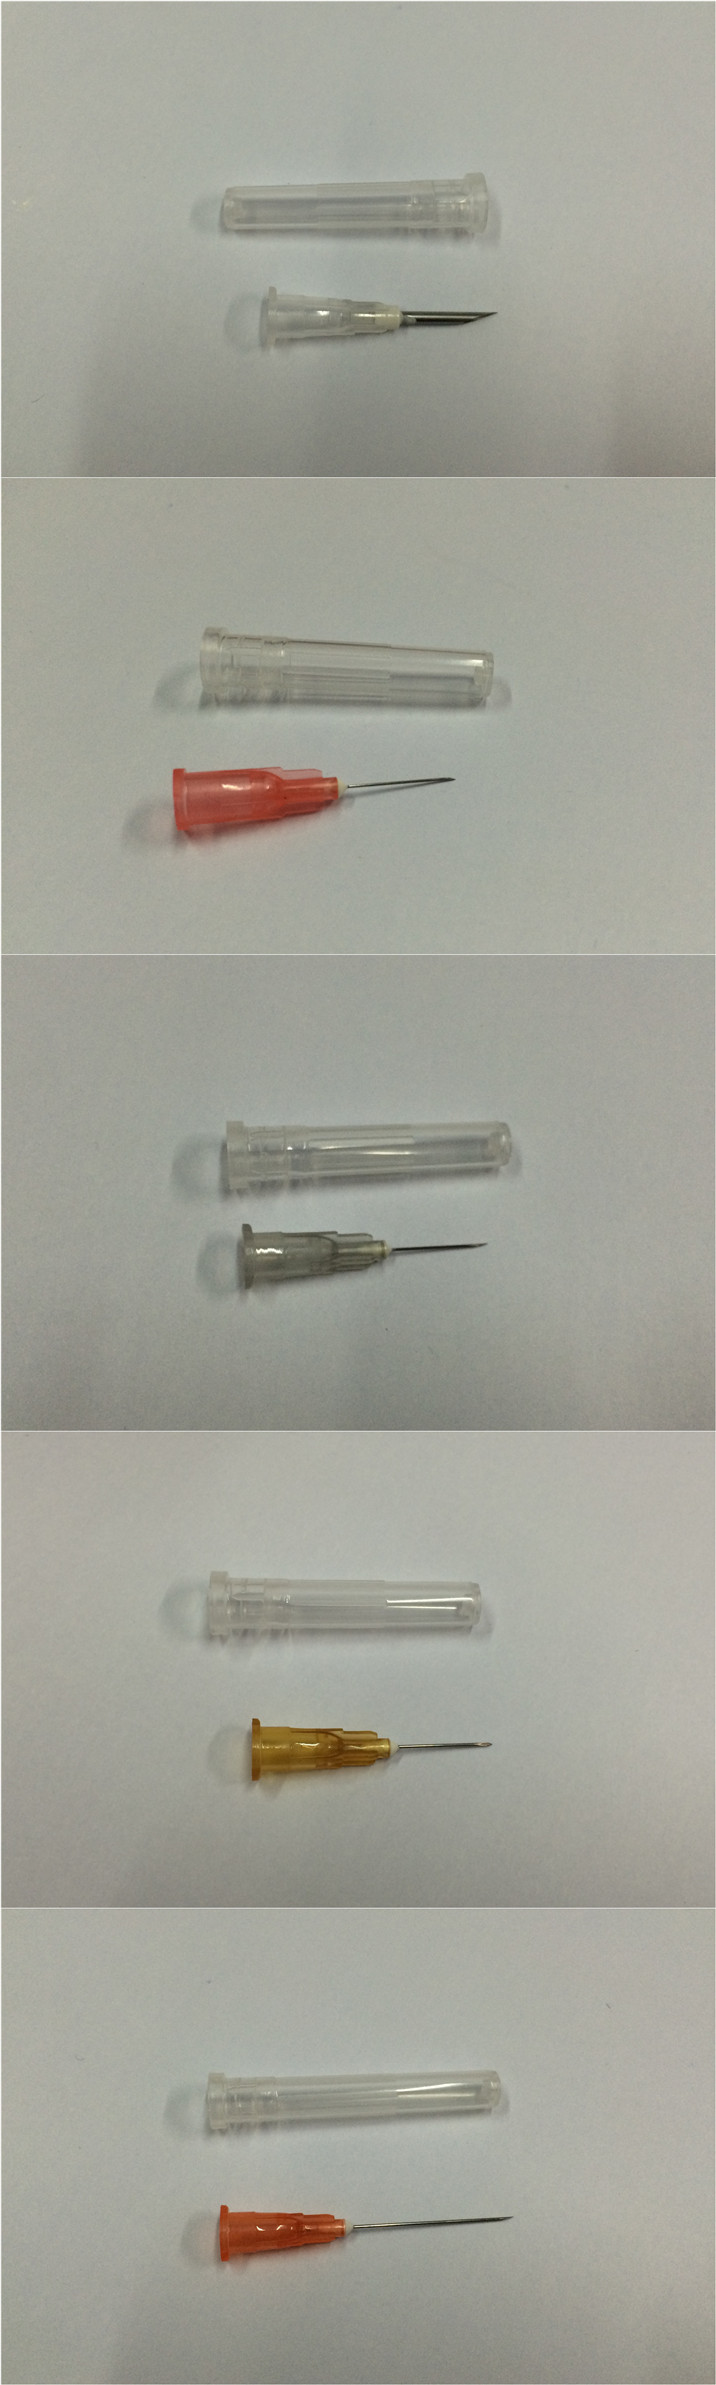 Stainless steel Bulk Needle Accessories for Syringe